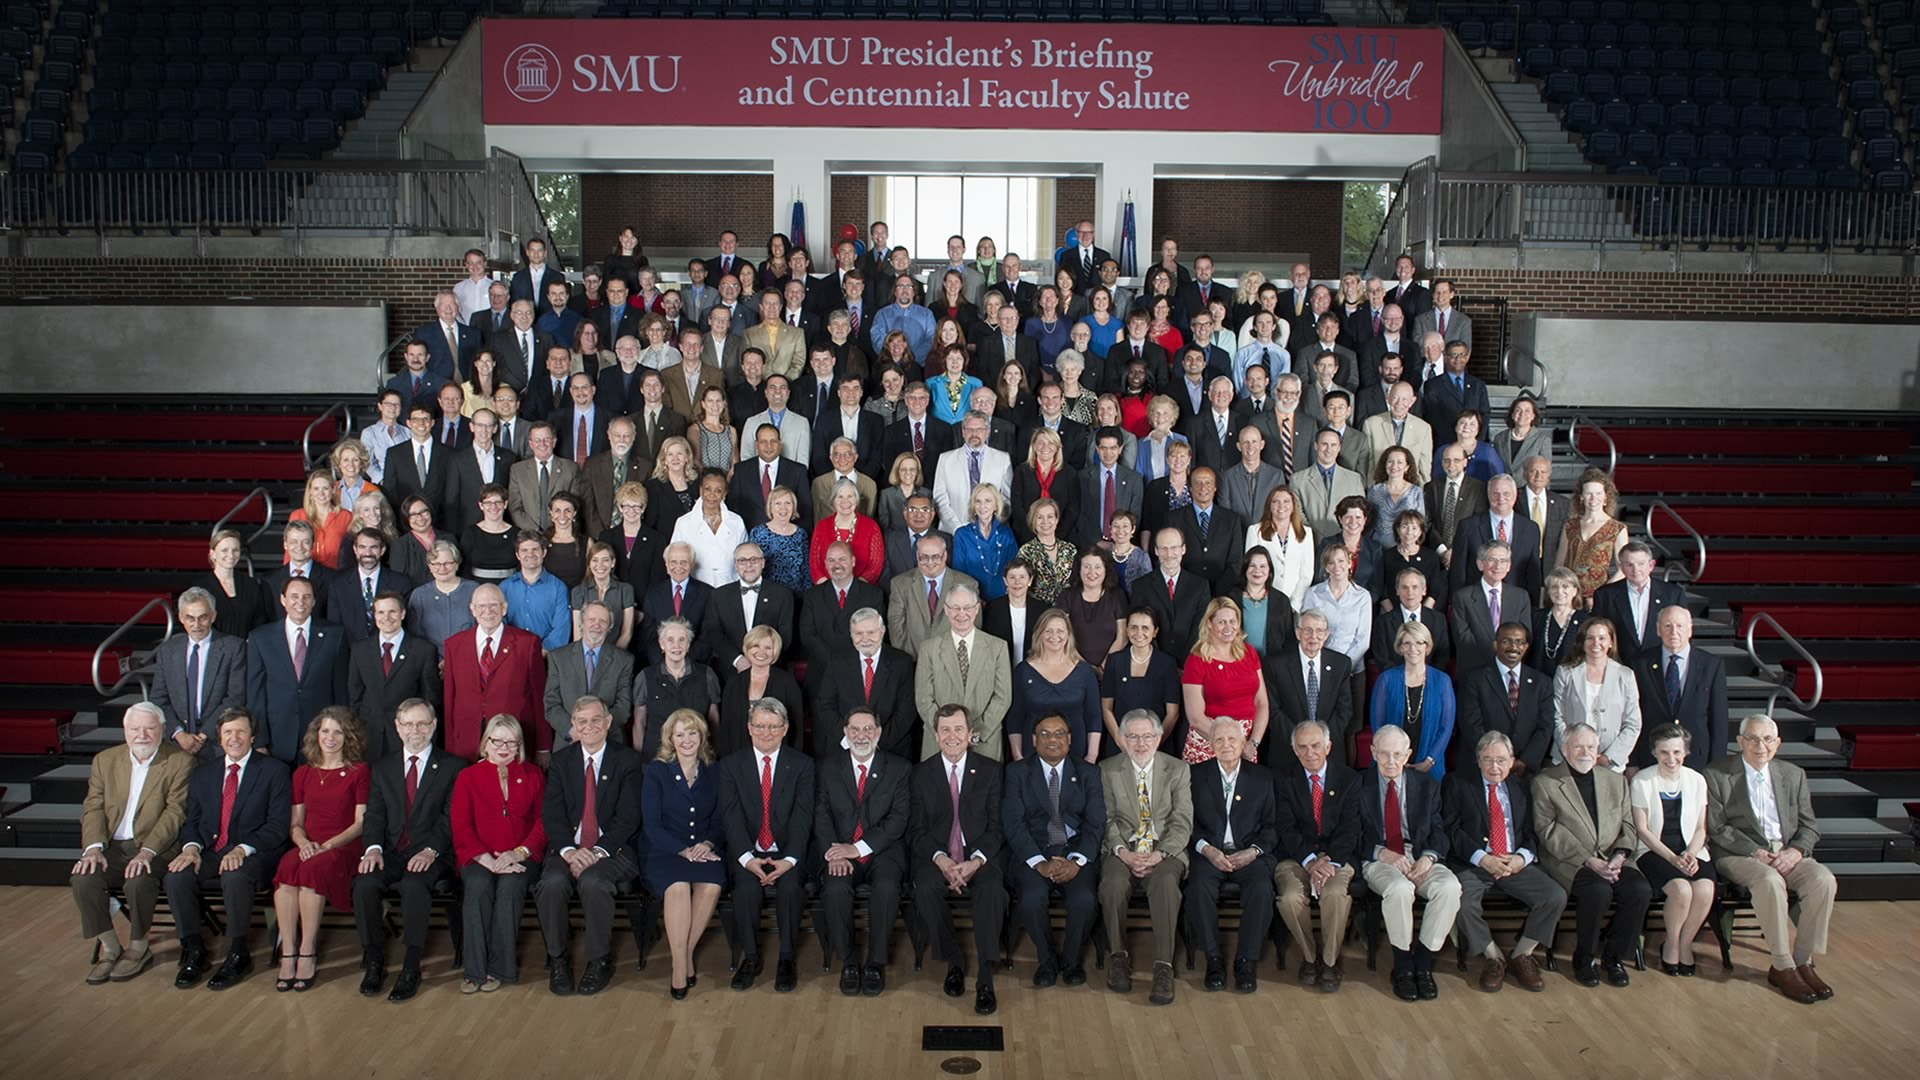 SMU Faculty Photo